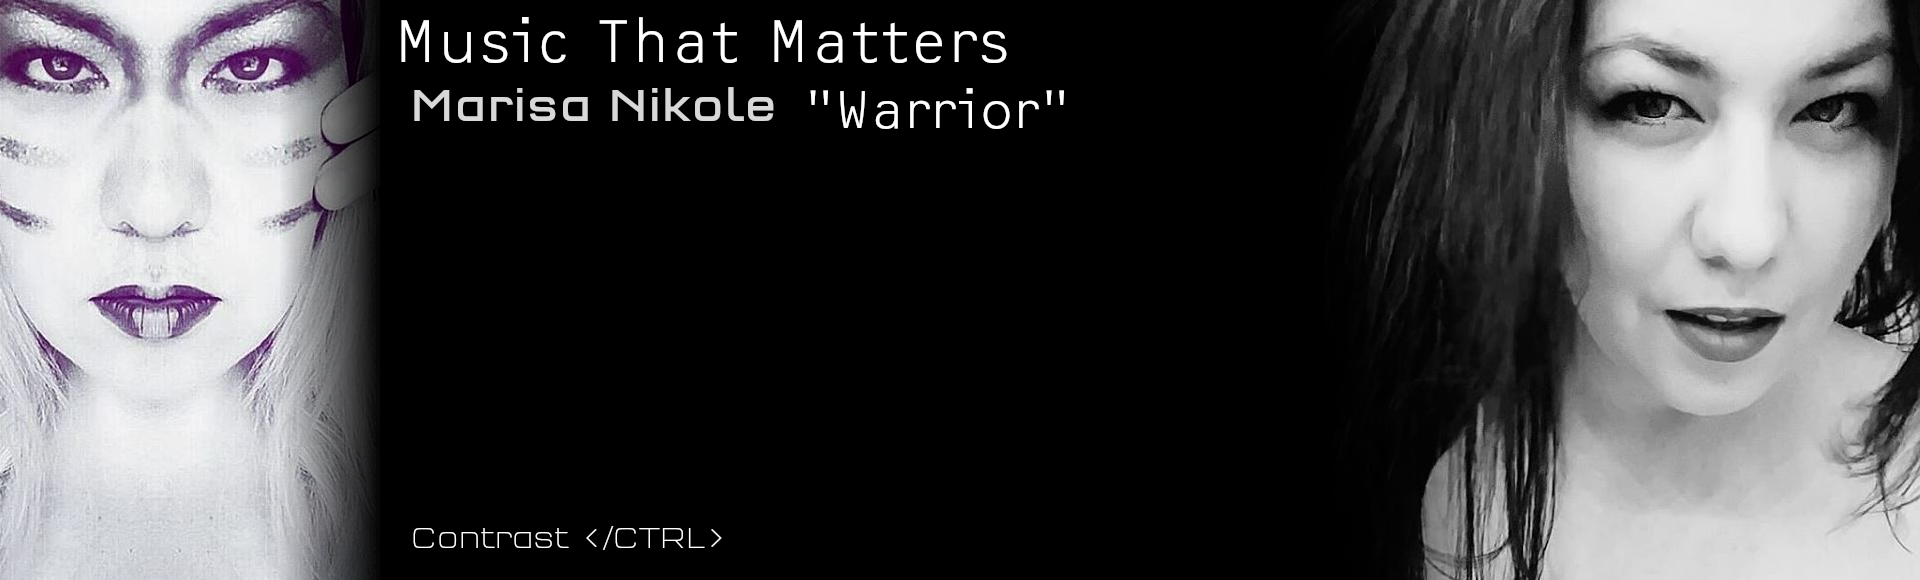 "Music That Matters: Marisa Nikole ""Warrior"""